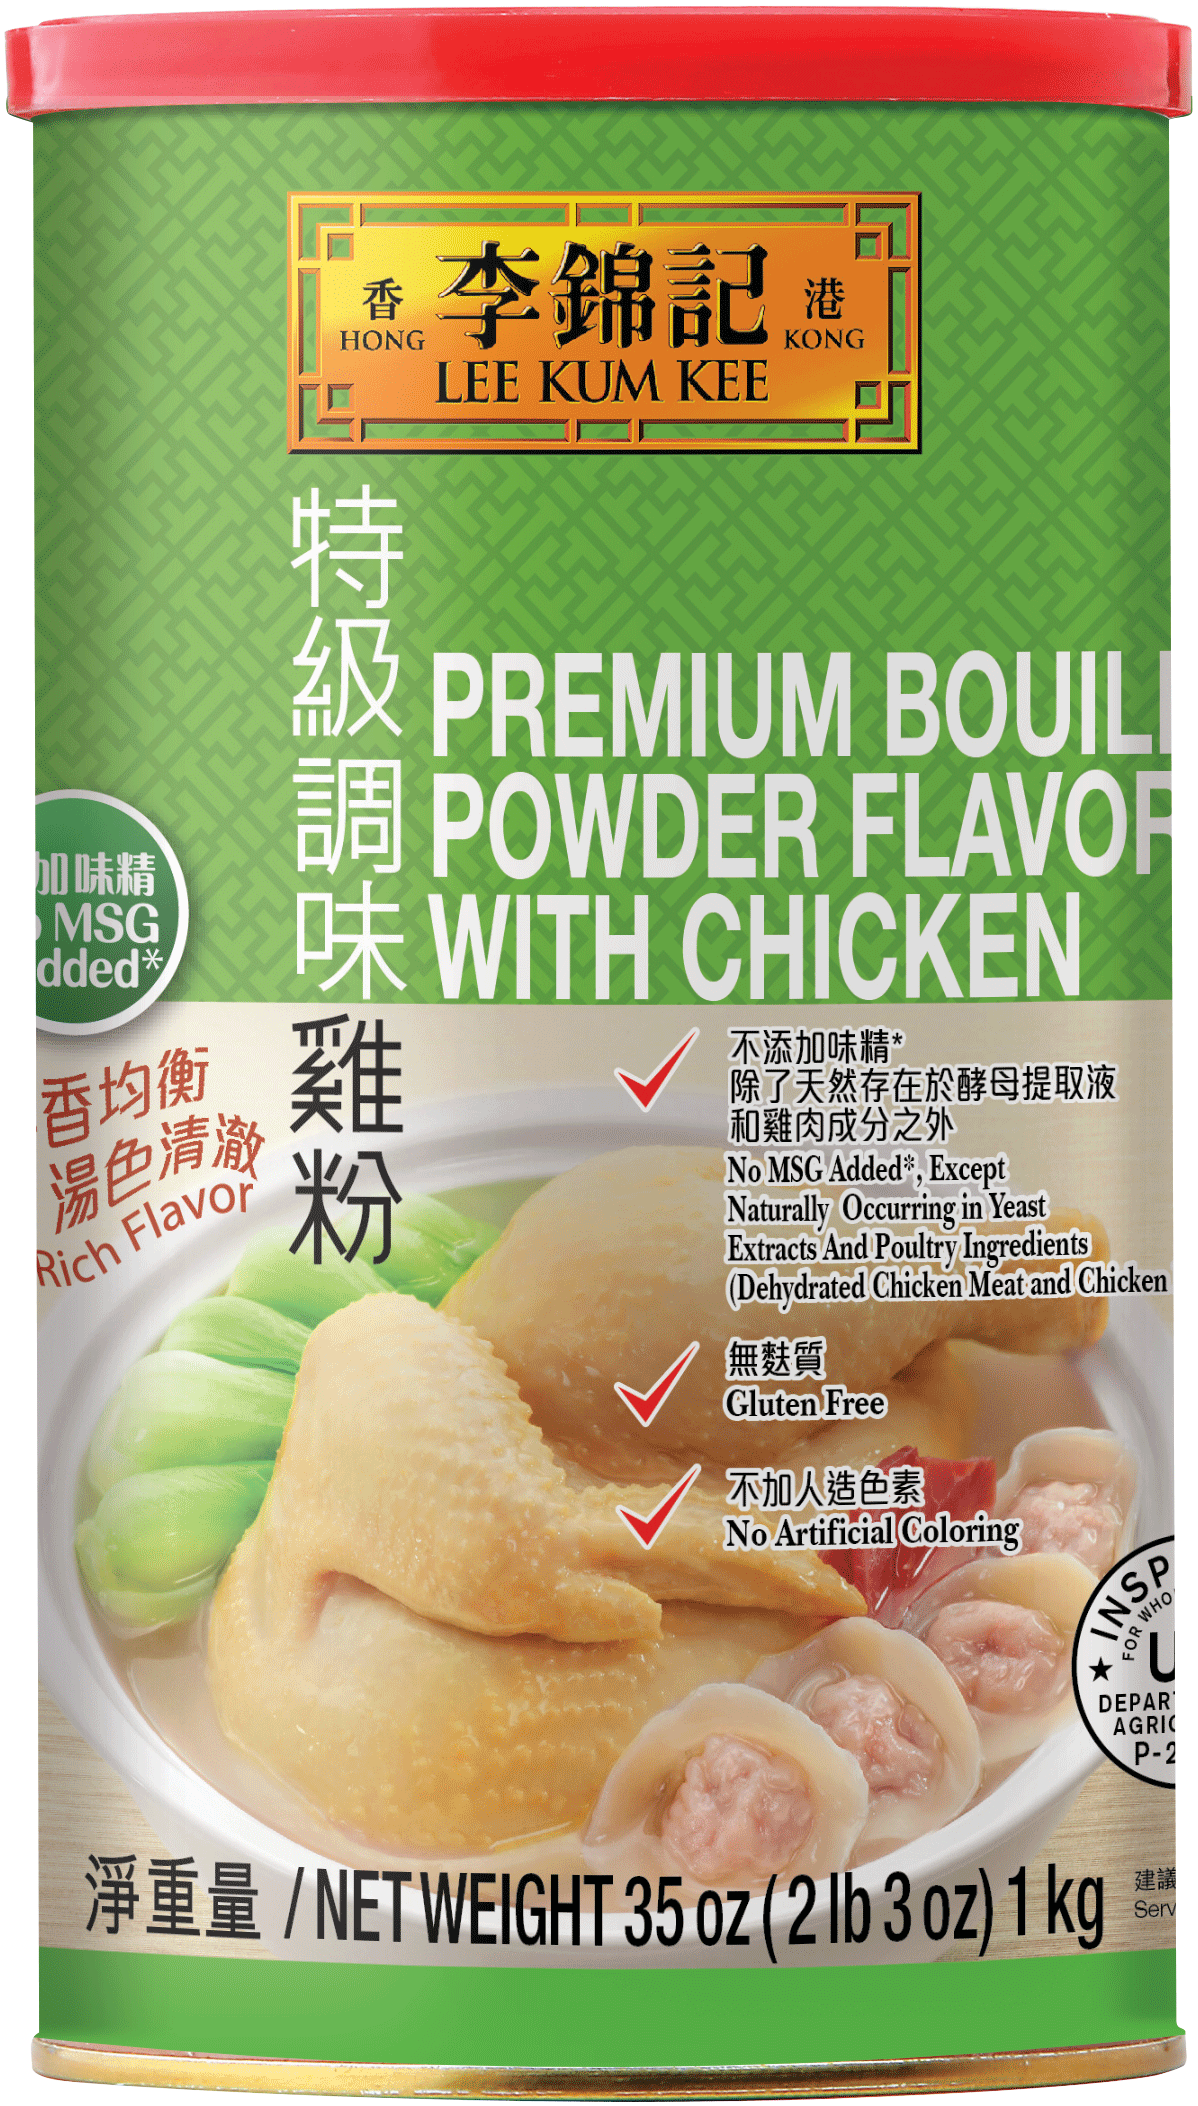 Walmart Corporate Contact >> Premium Bouillon Powder Flavored With Chicken No MSG Added | USA